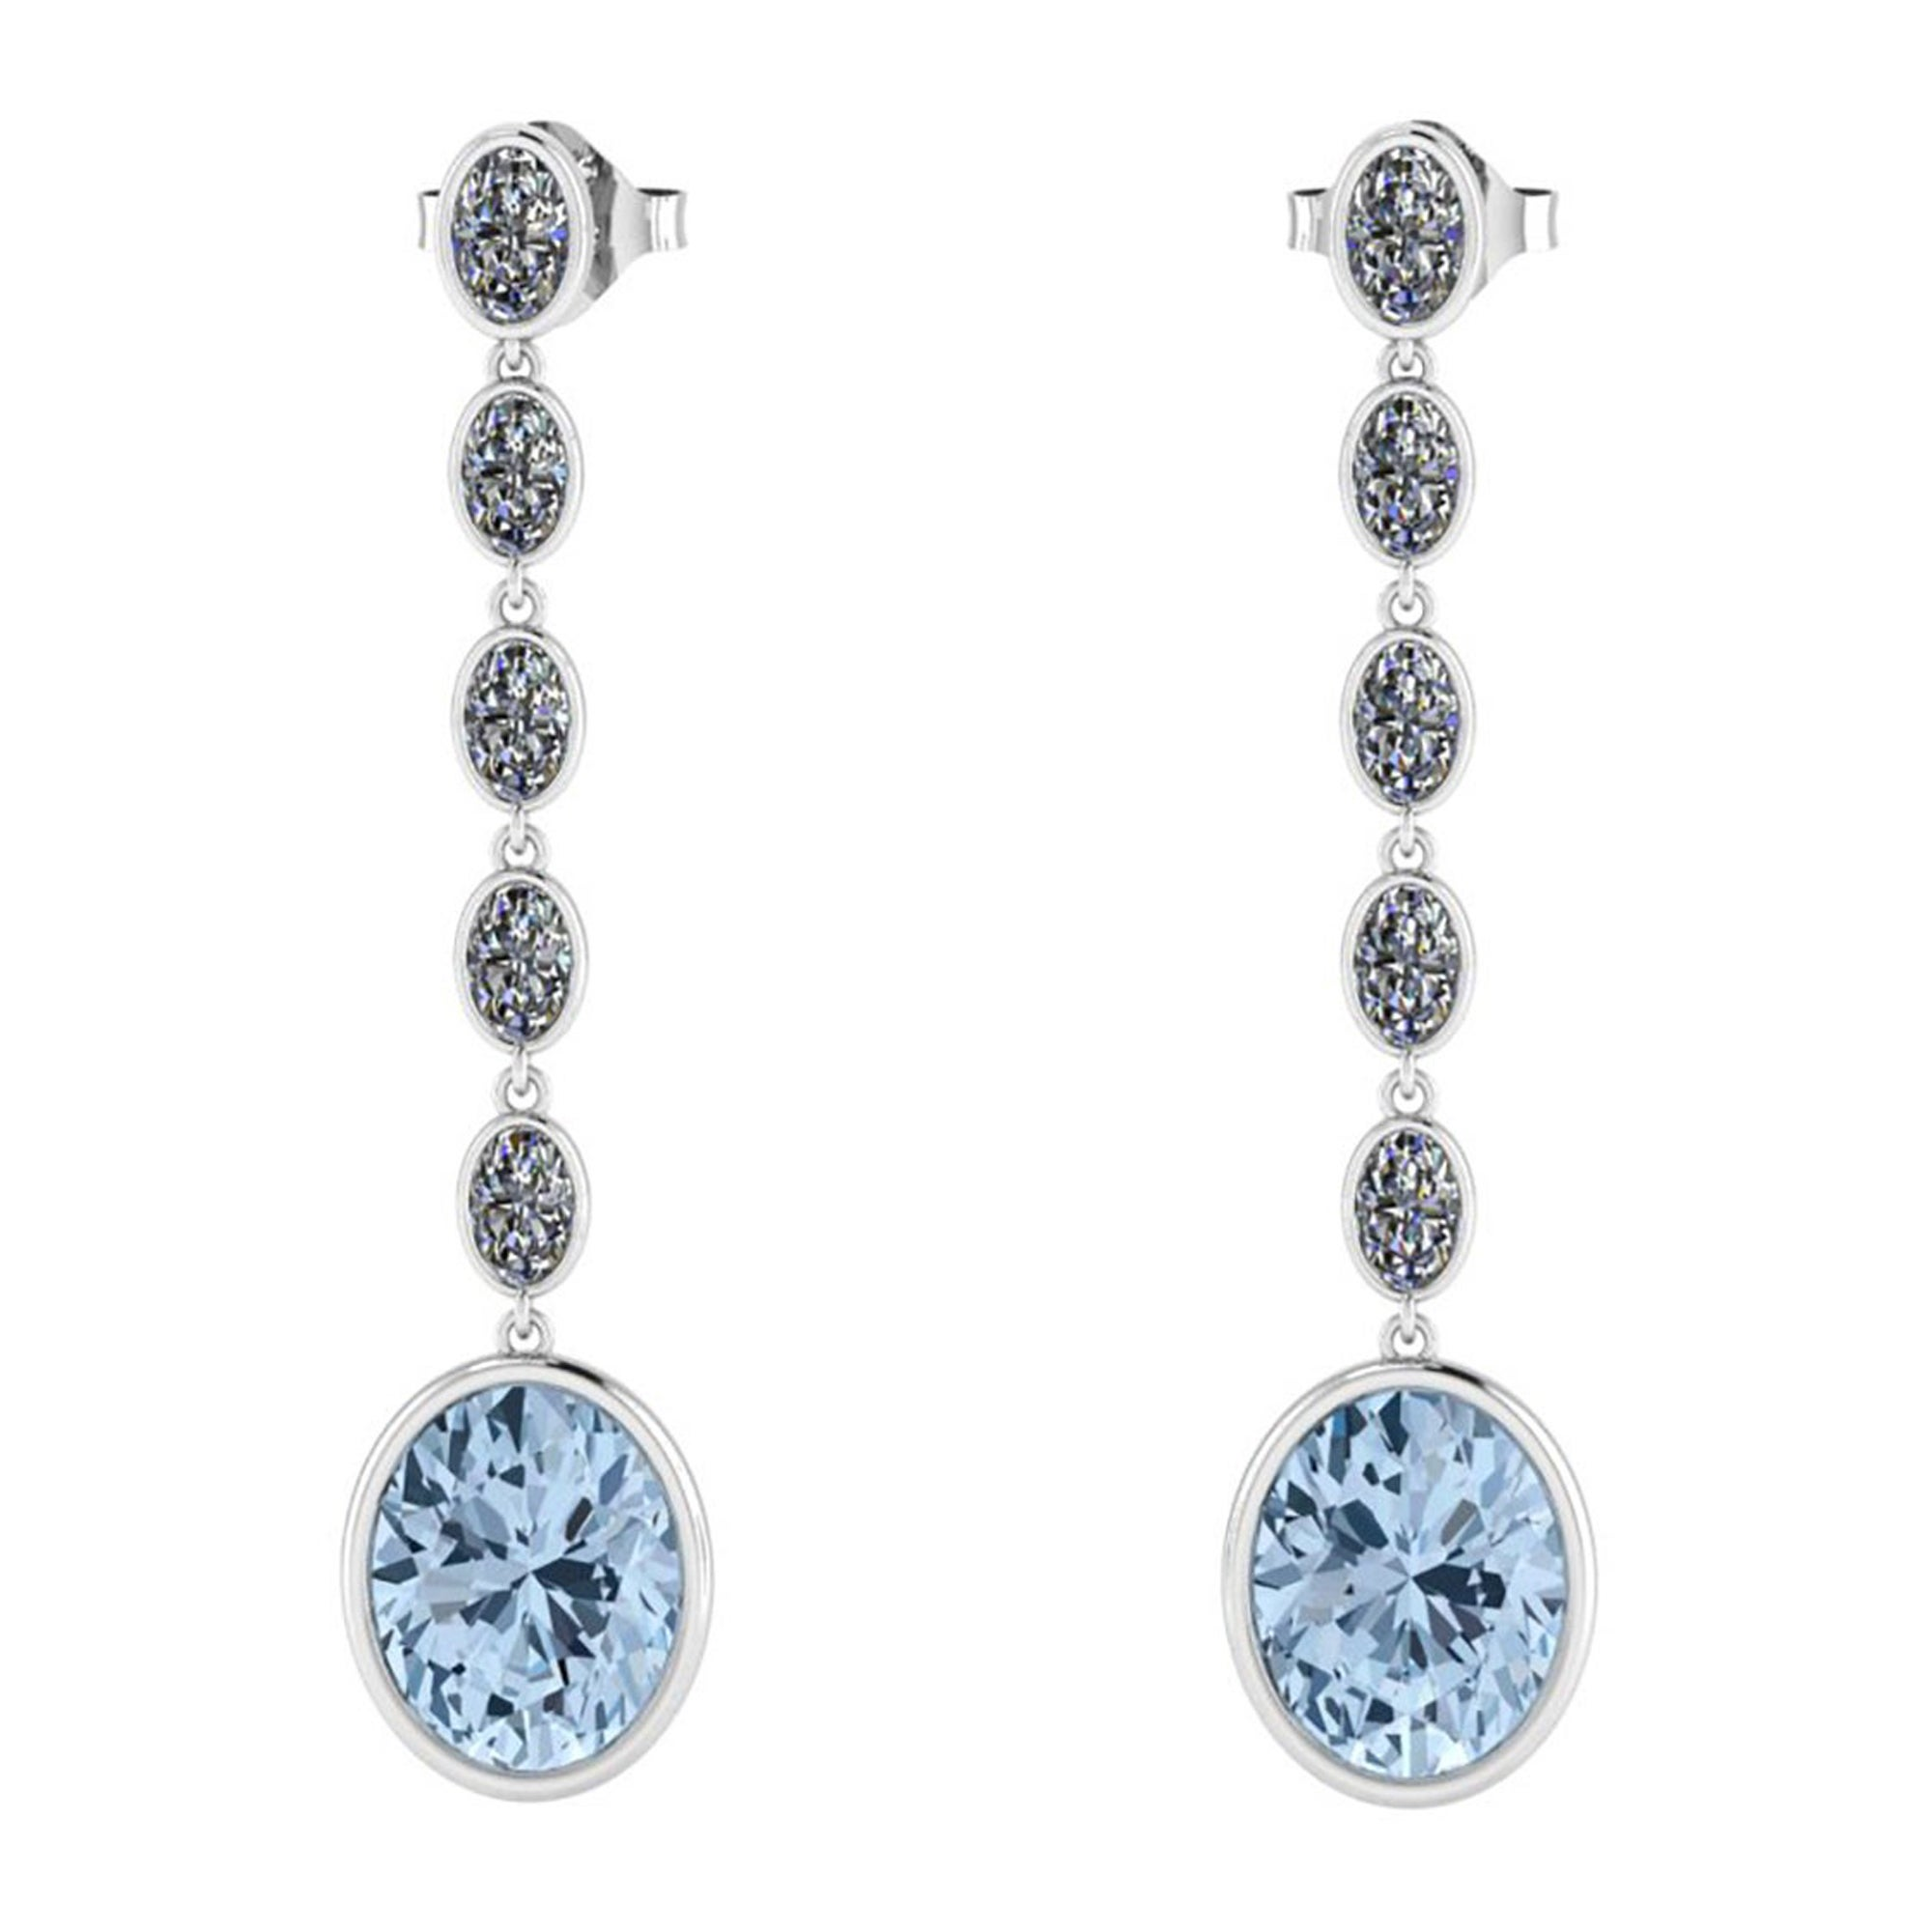 4.60 Carat Oval Aquamarine 1.10 Carat Oval Diamond Dangling Earrings in 18K Gold